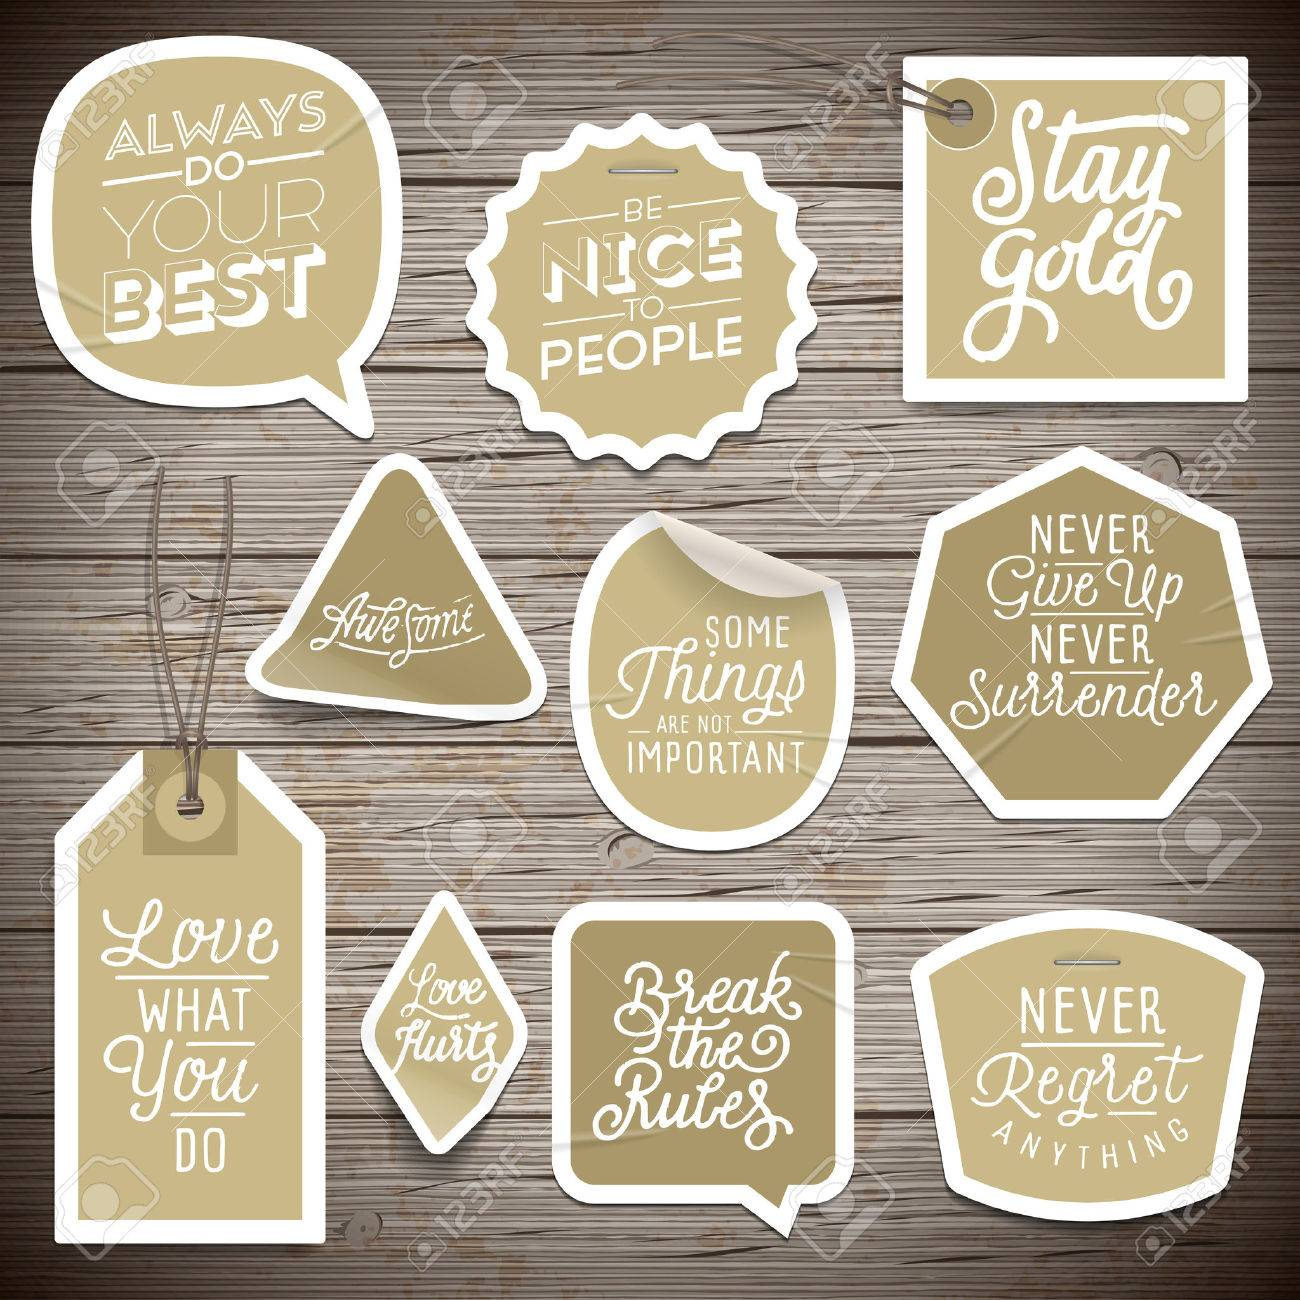 Stickers on rustic wood background. Vector illustration. - 51849933